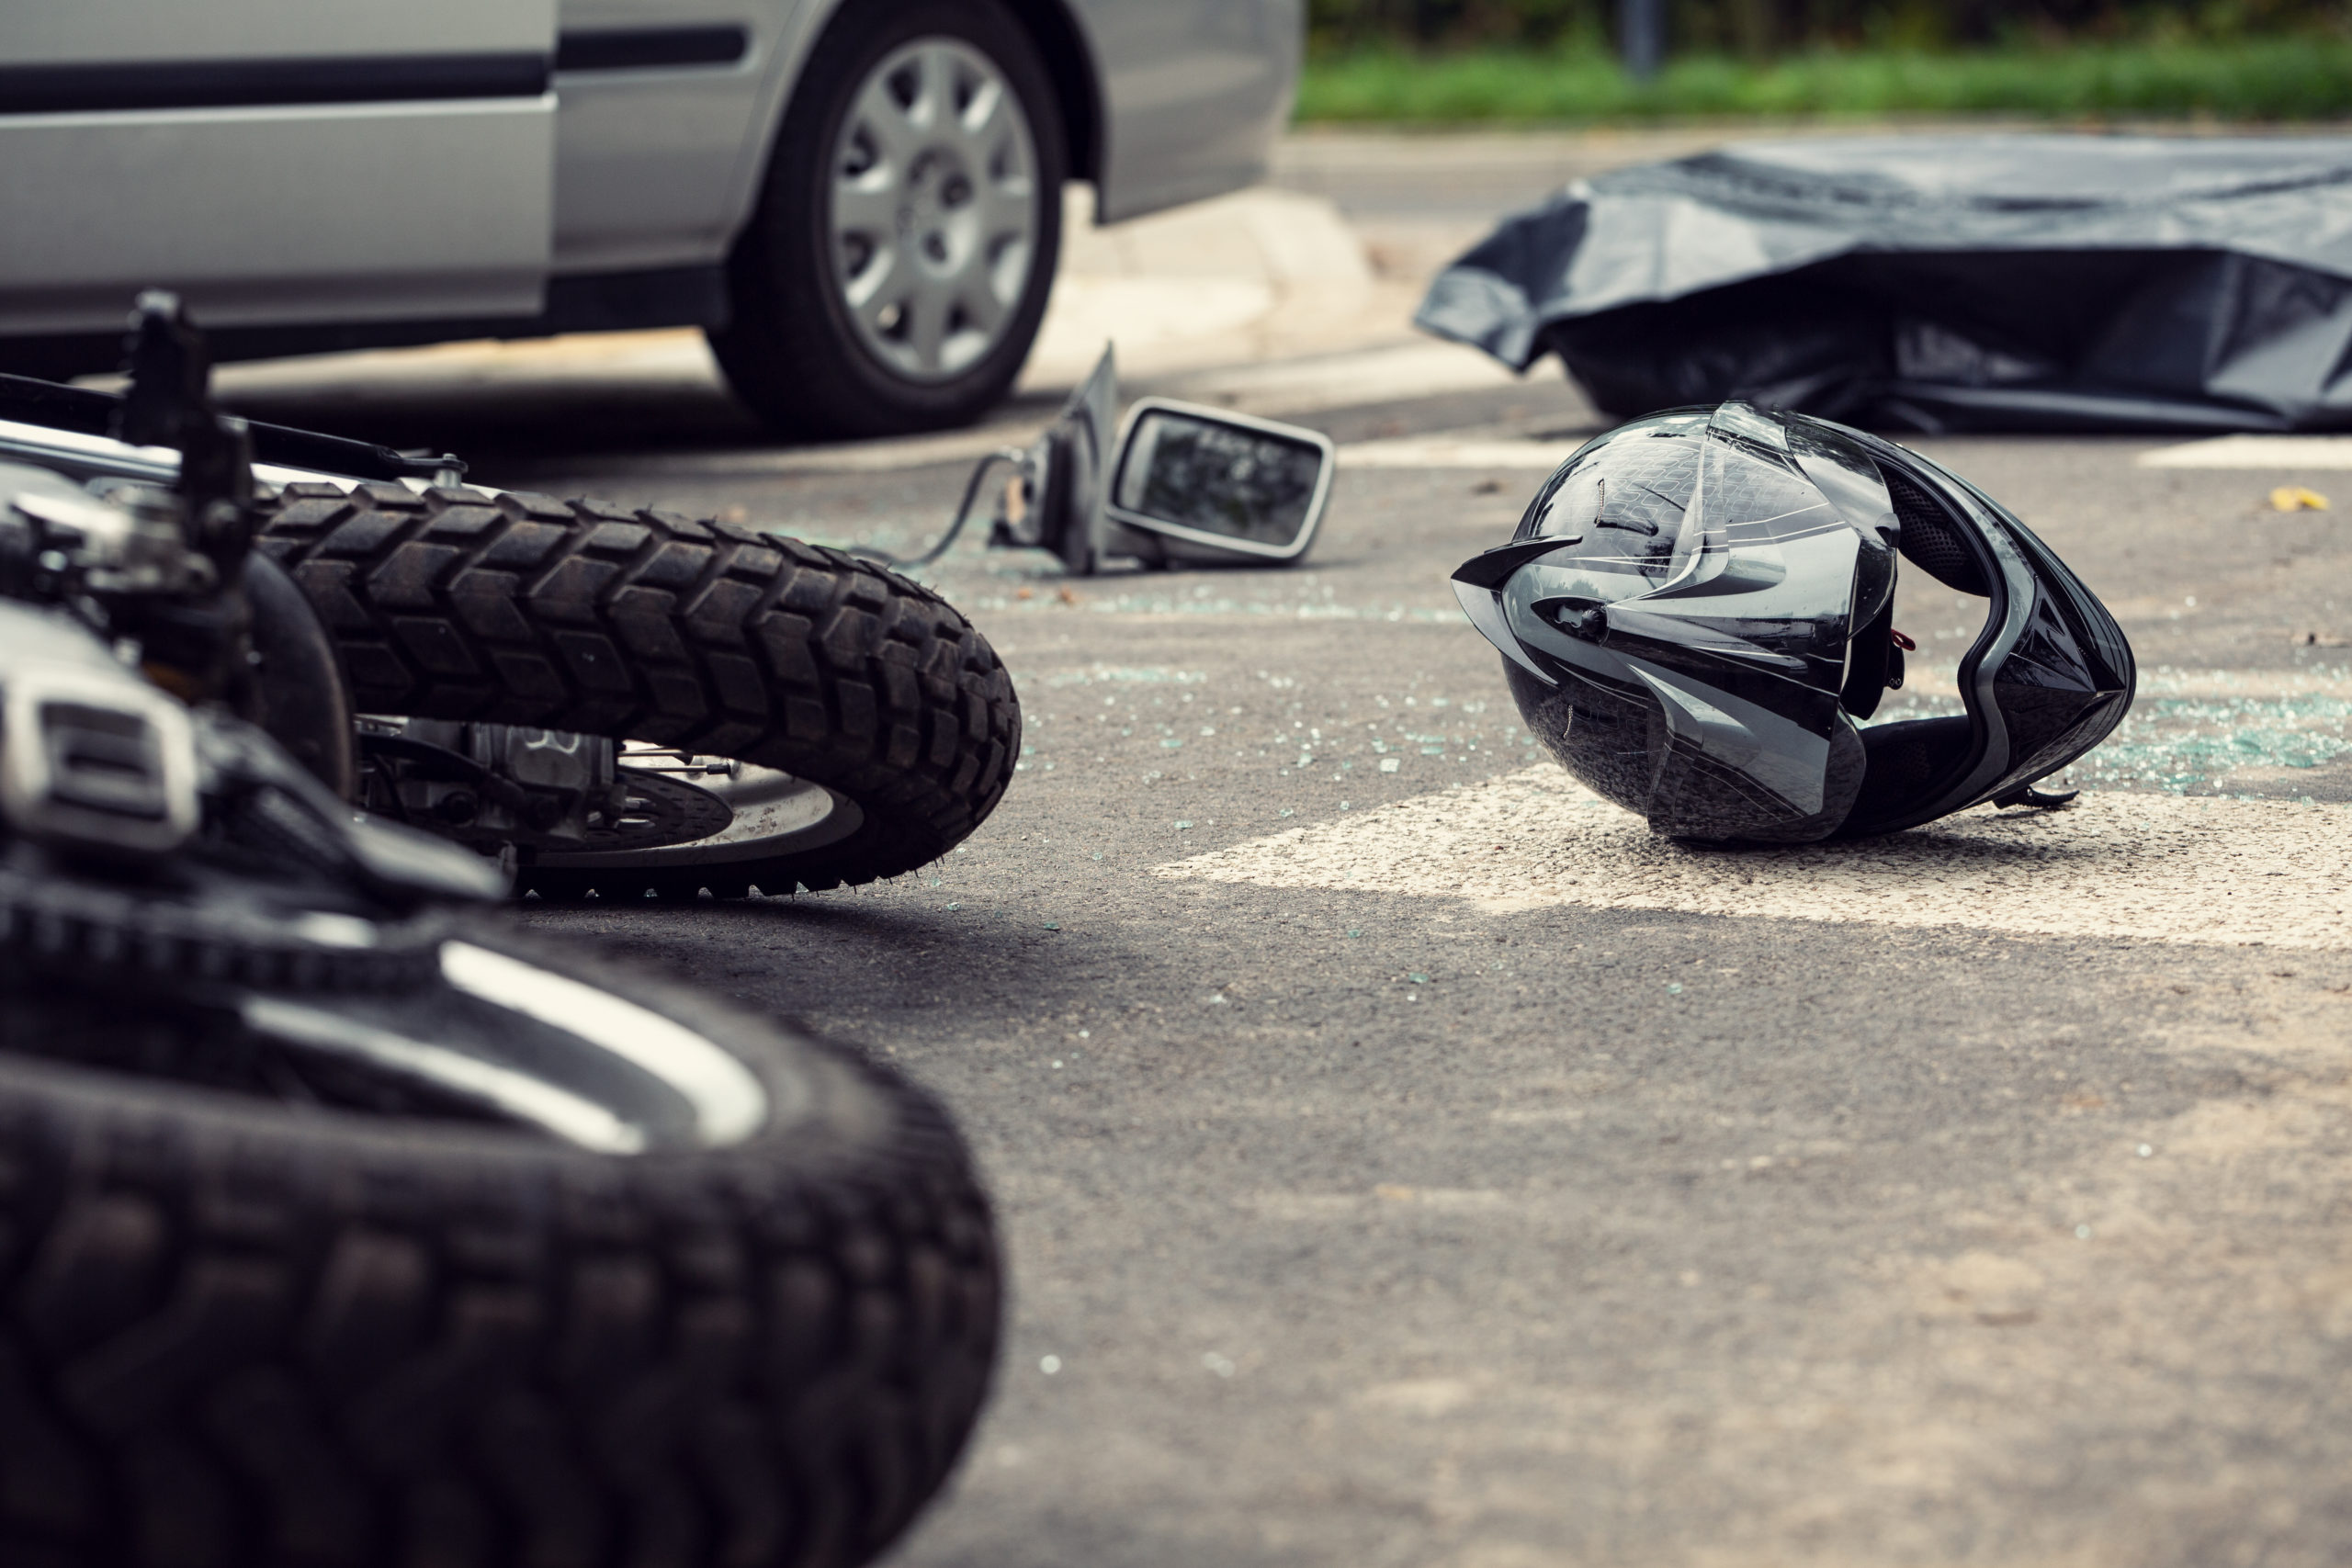 Motorcycle accident attorneys in Daytona Beach answer common questions